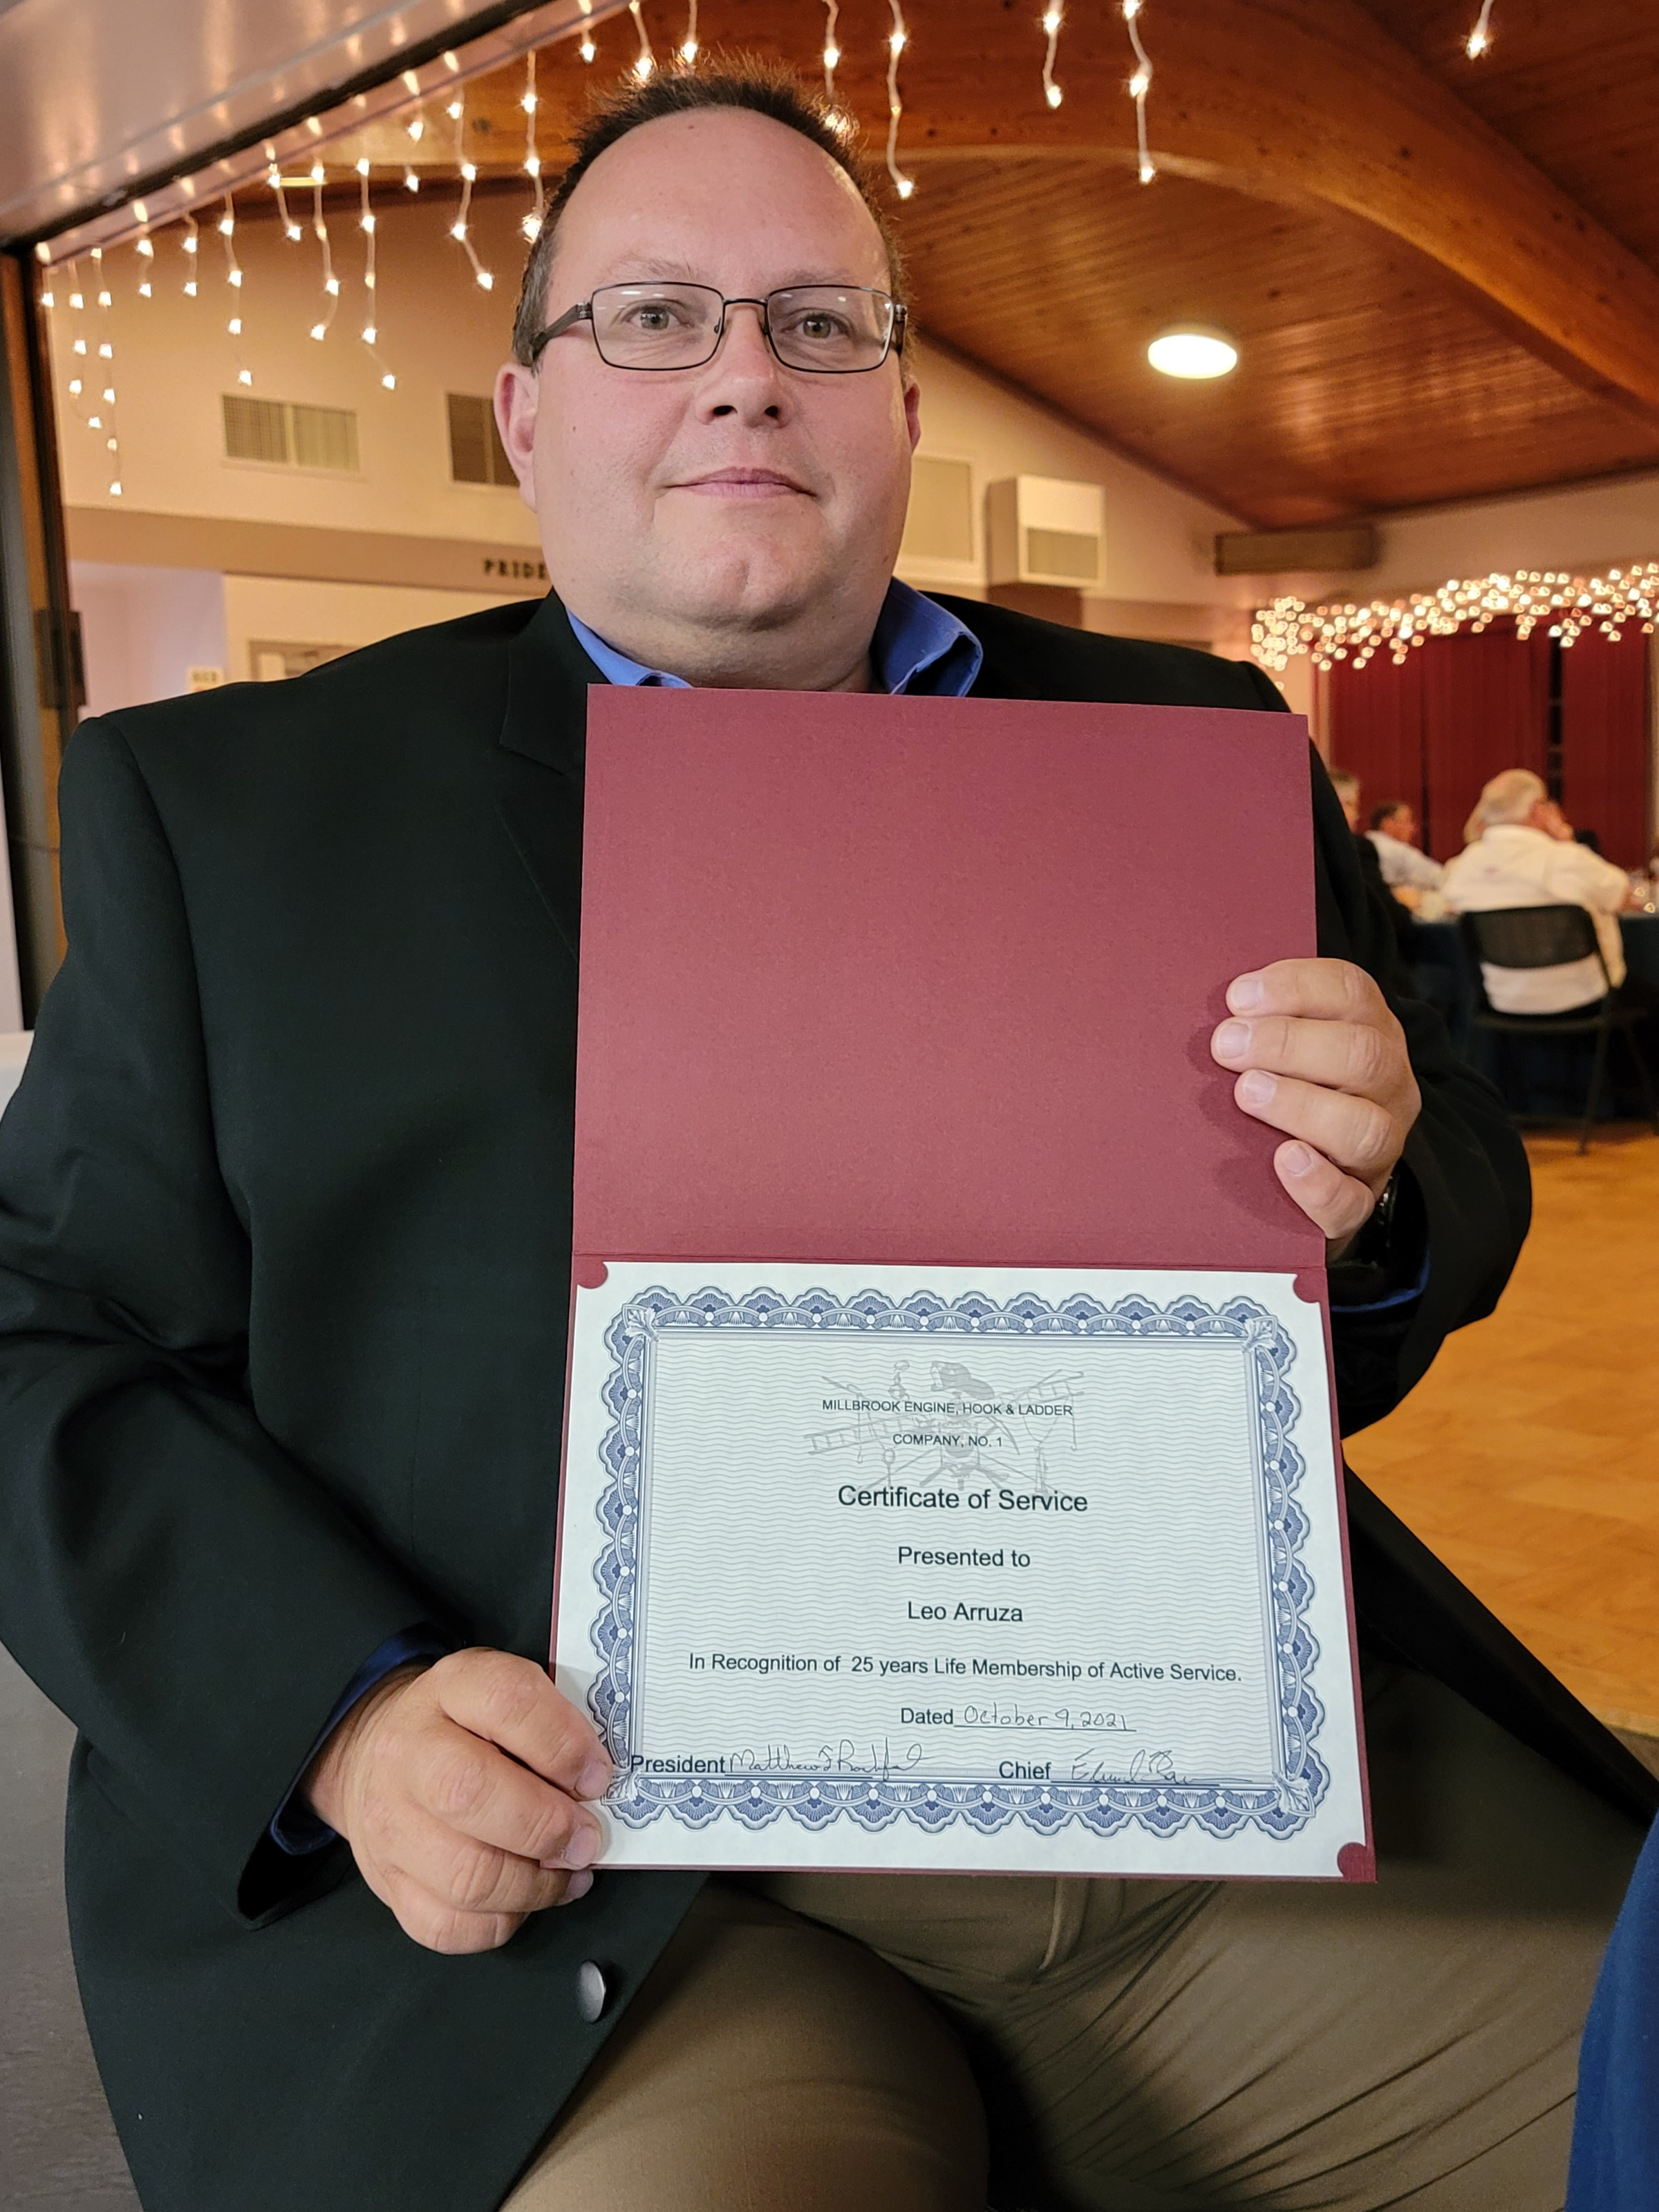 <strong>Leo Arruza held a certificate for 25 years of service at the Millbrook Hook and Ladder Company's annual dinner, where he also was awarded the Lifetime Member's Award.<em>Photoby Judith O'Hara Balfe</em></strong>